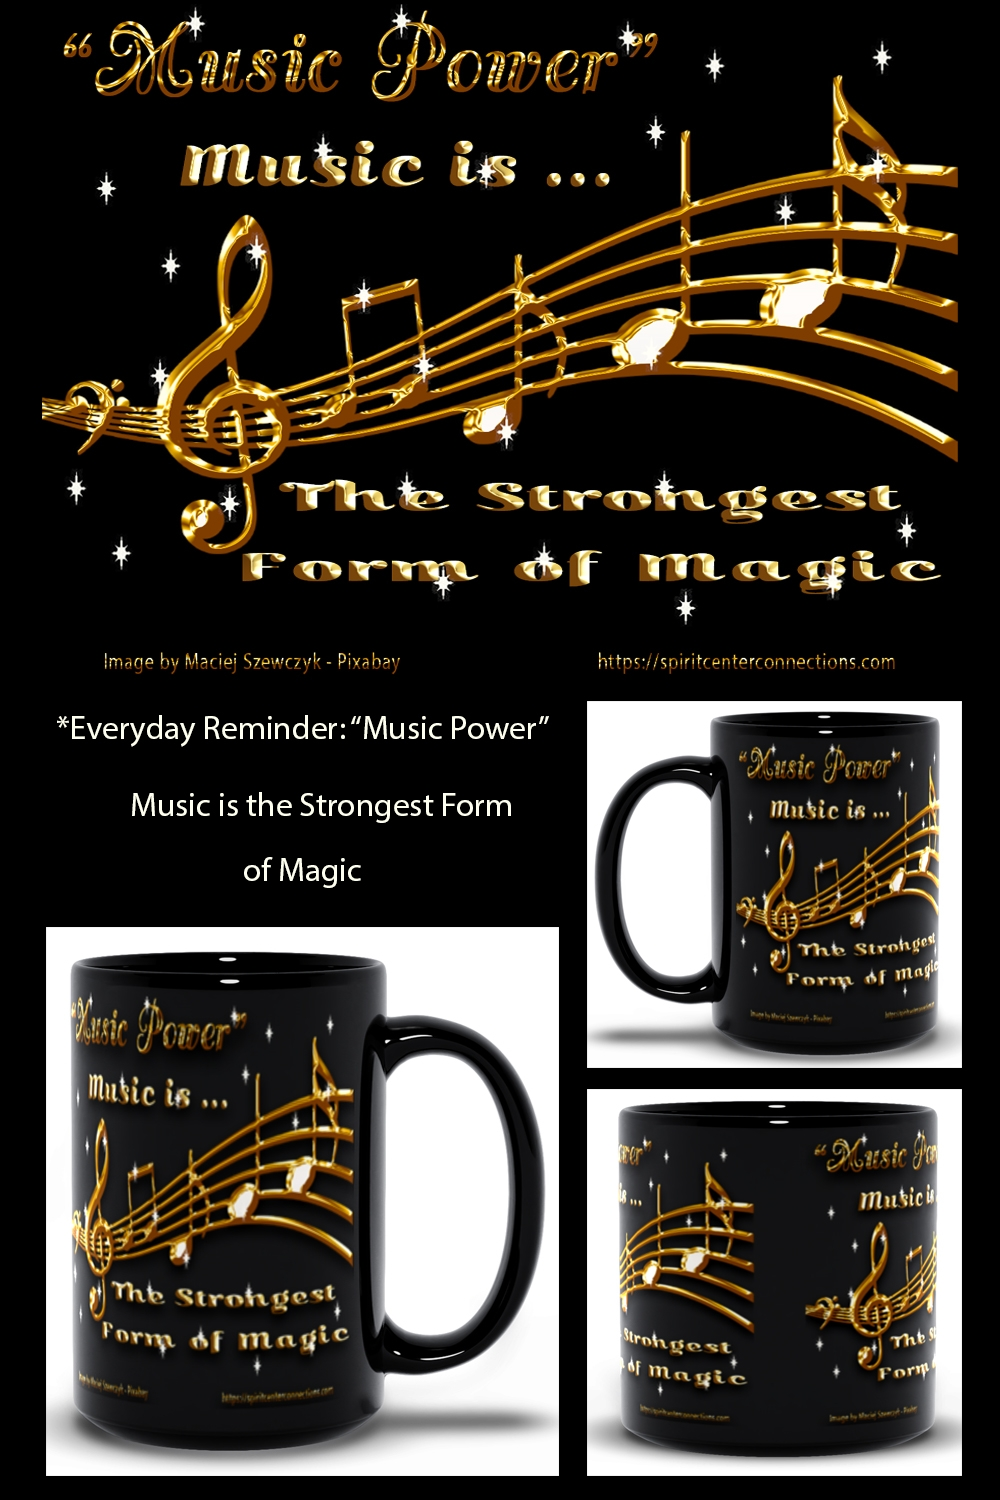 Music Power - Music is the Strongest Form of Magic